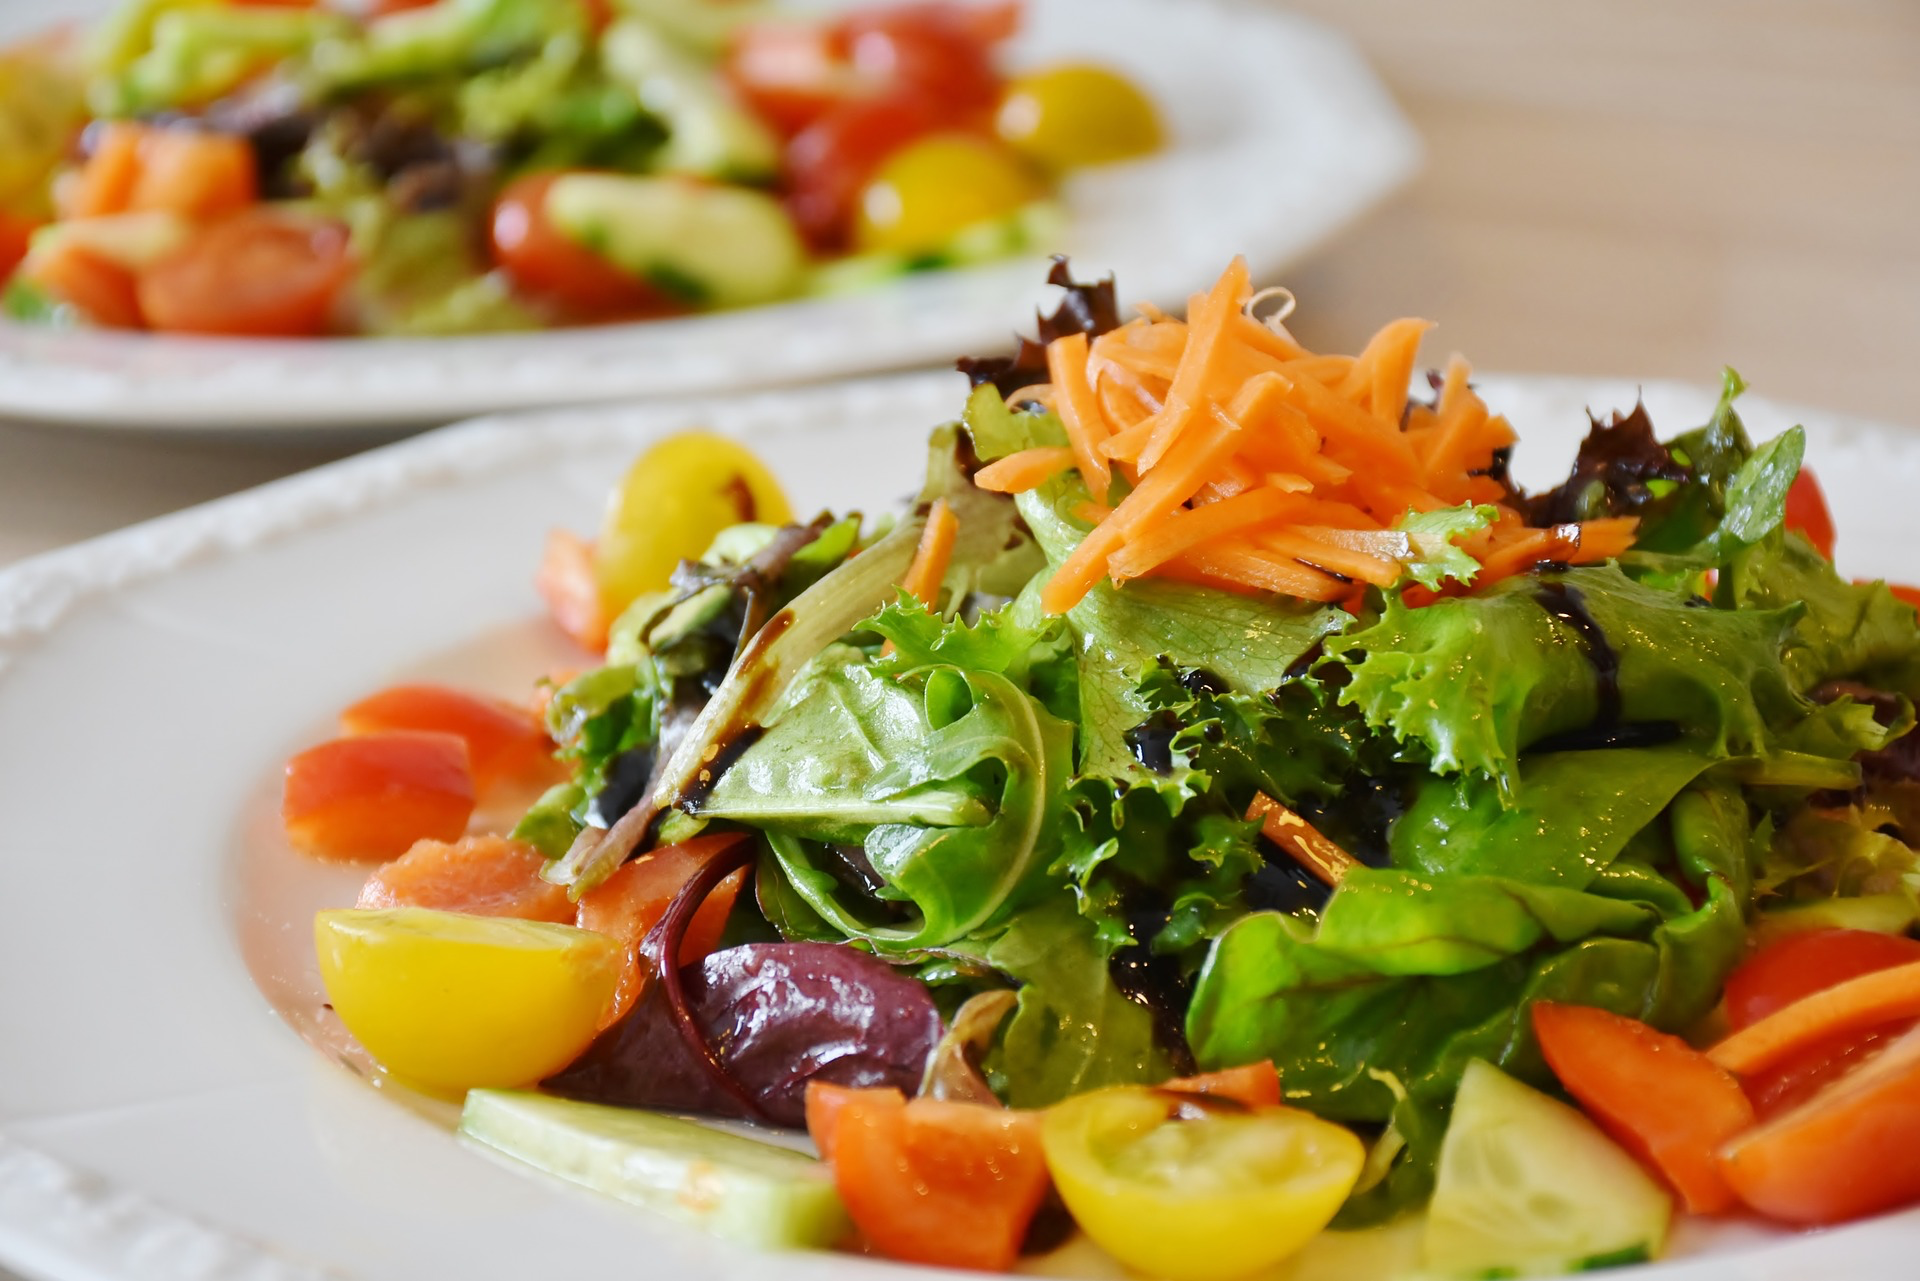 Reasons these 7 Diets Work To Help You Achieve Weight Loss Success